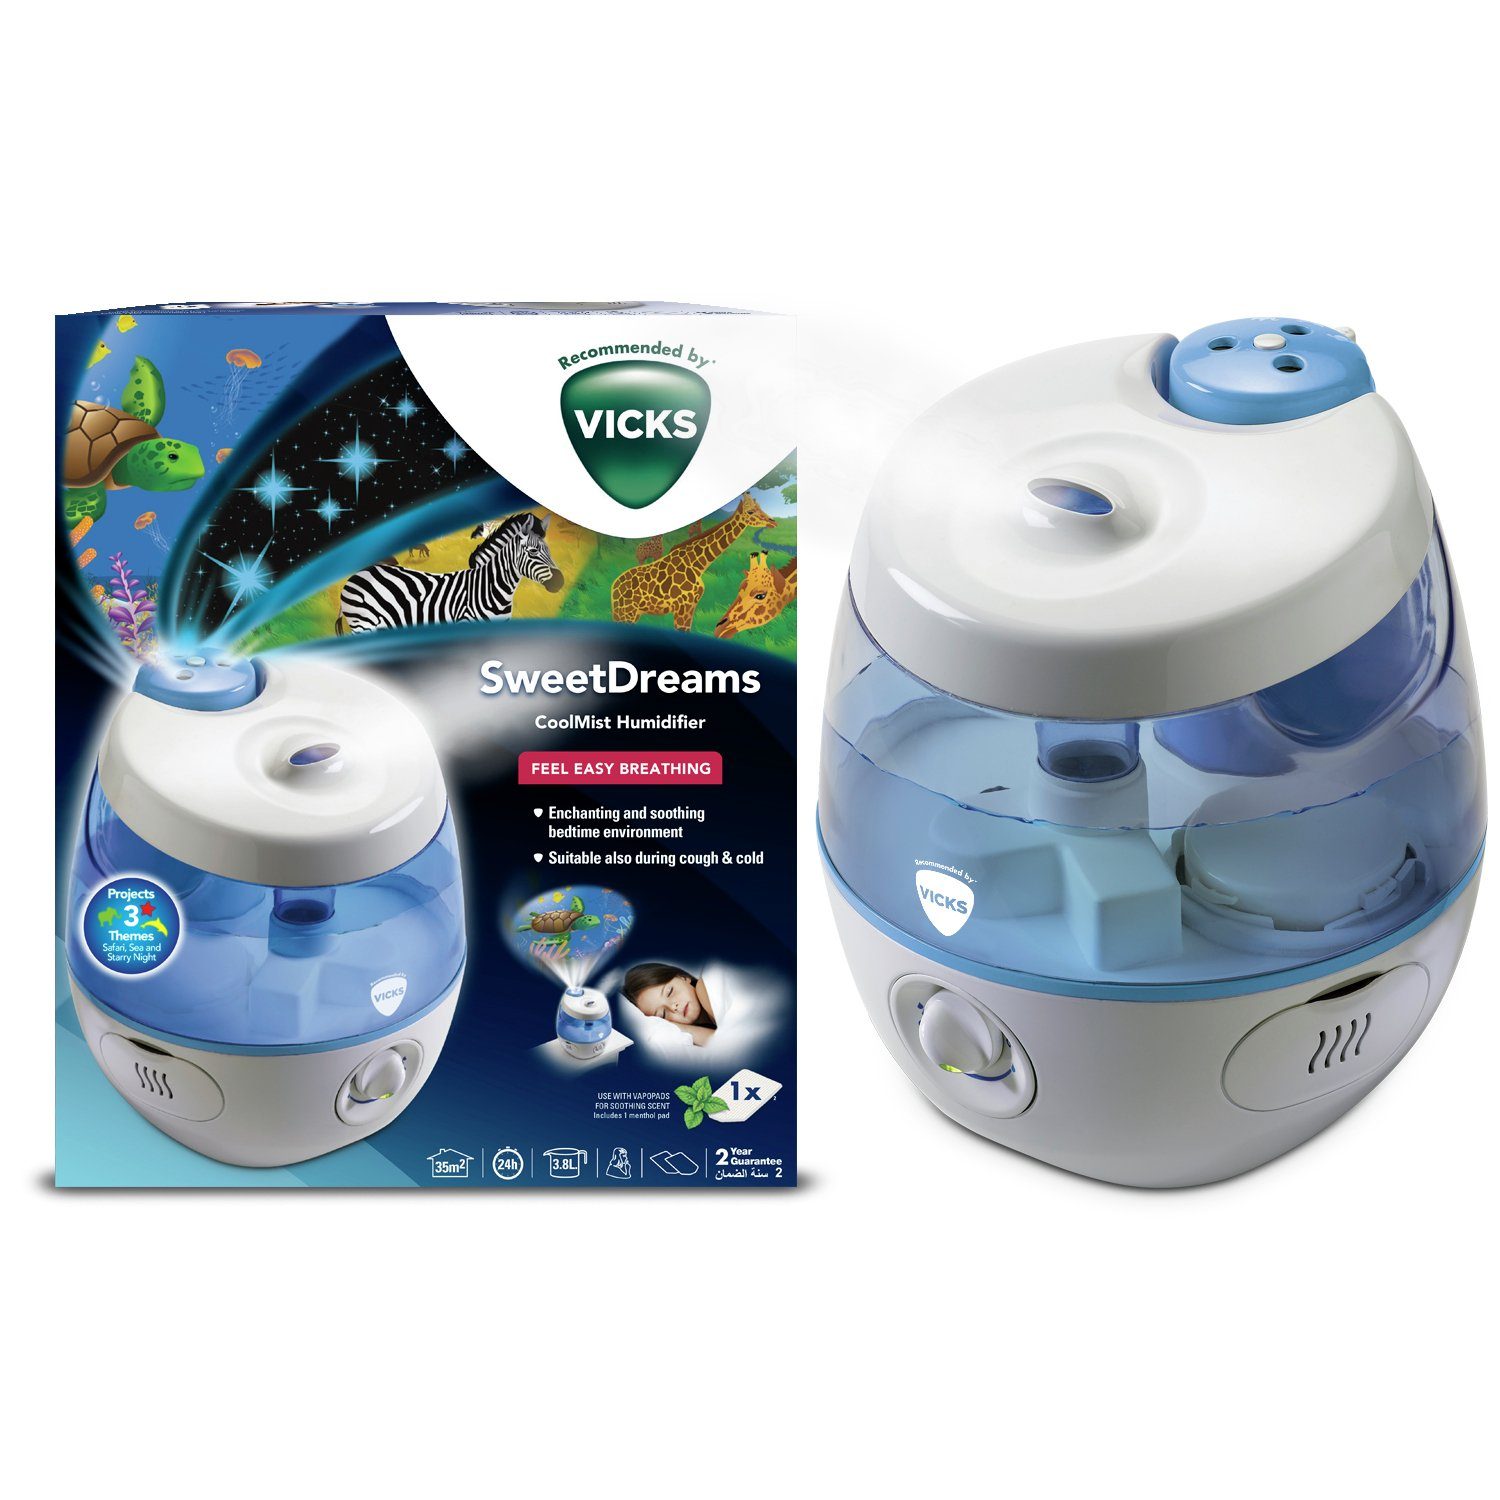 Vicks sweet dreams humidifier and projector for Humidifier cleaning fish